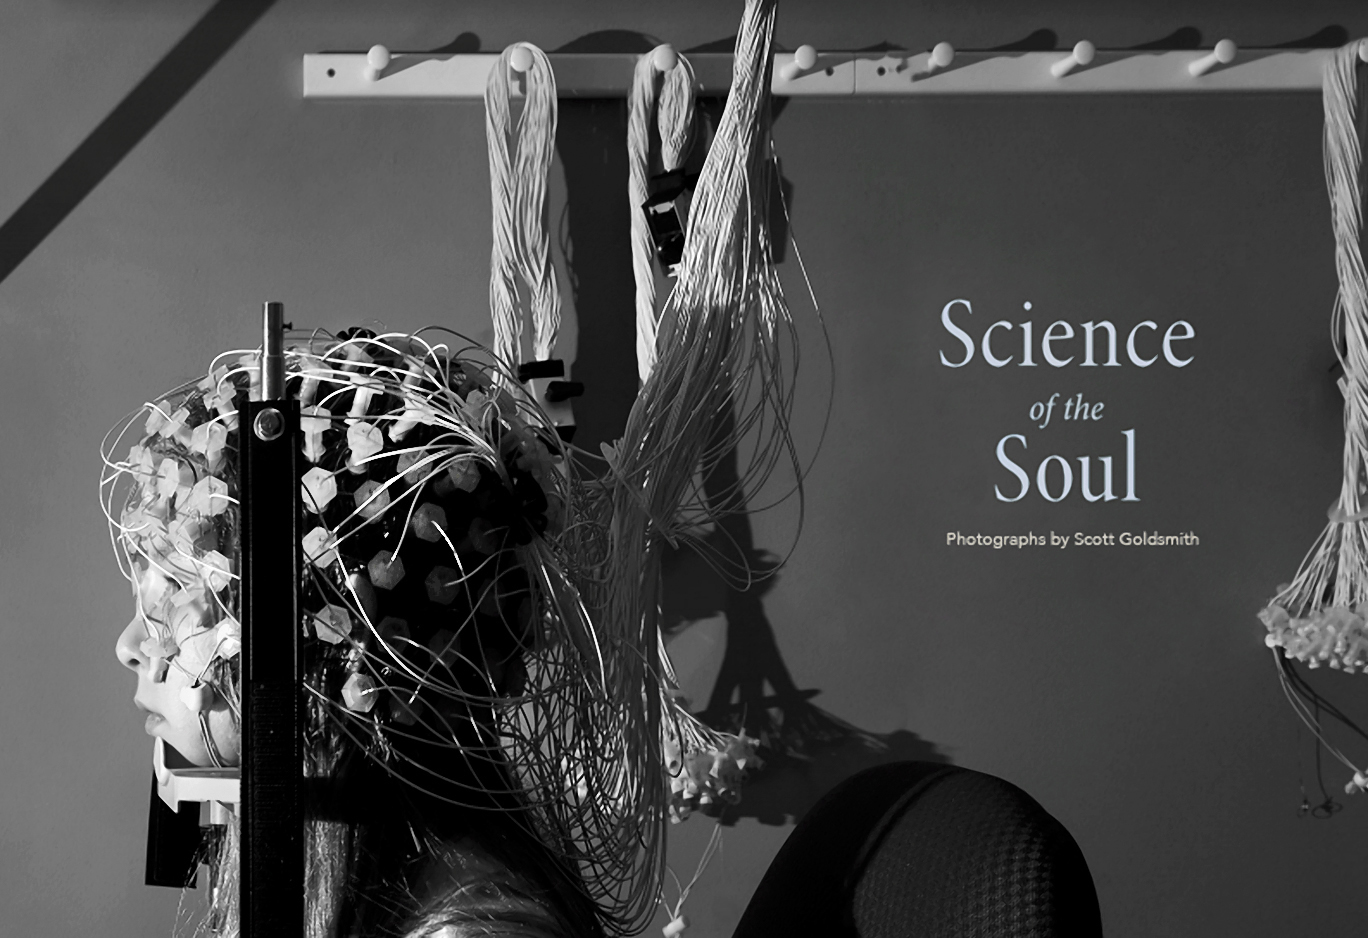 ScienceoftheSoulPloughXX